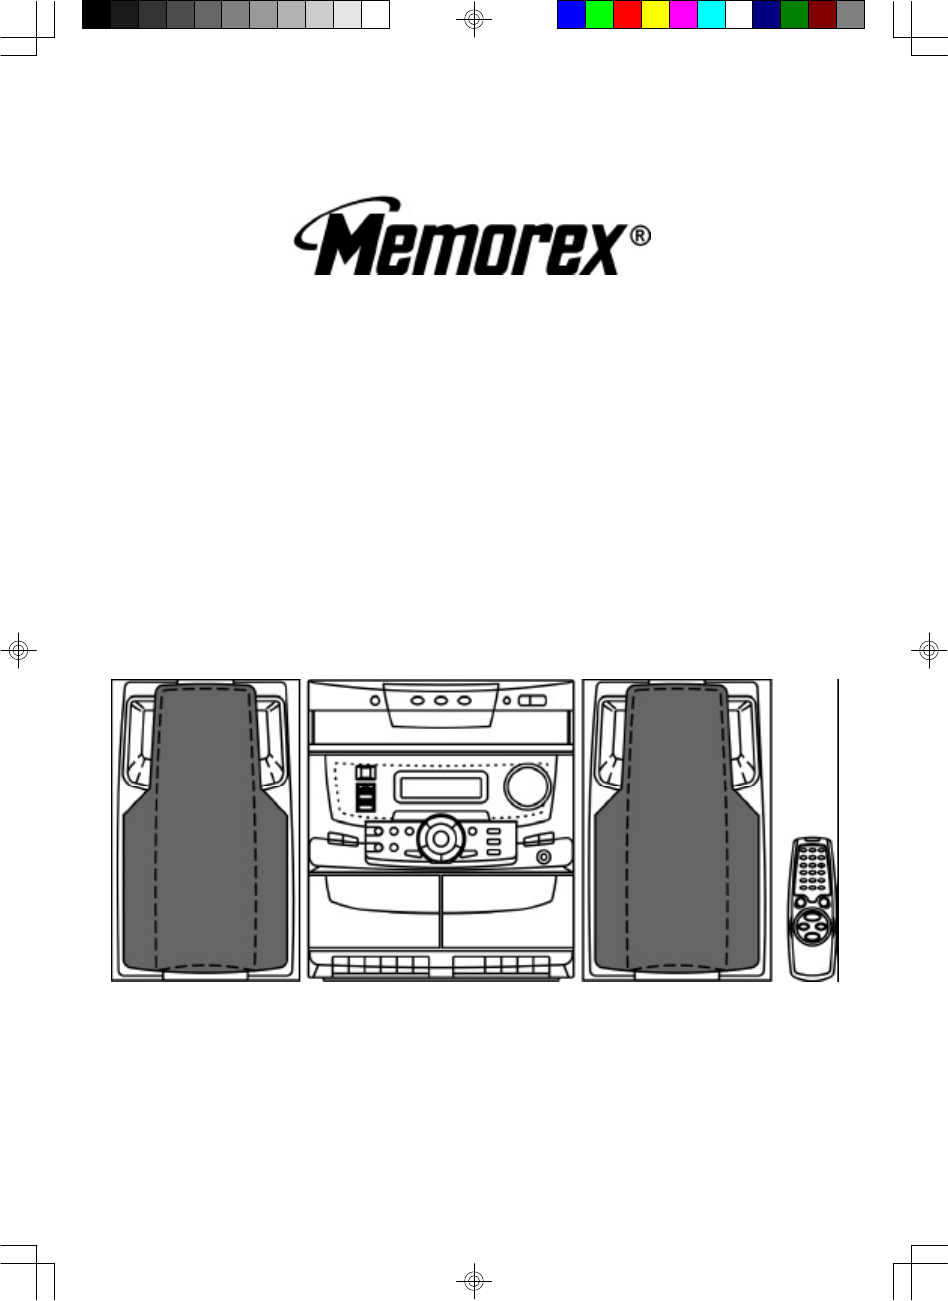 memorex stereo system mx5310 user guide